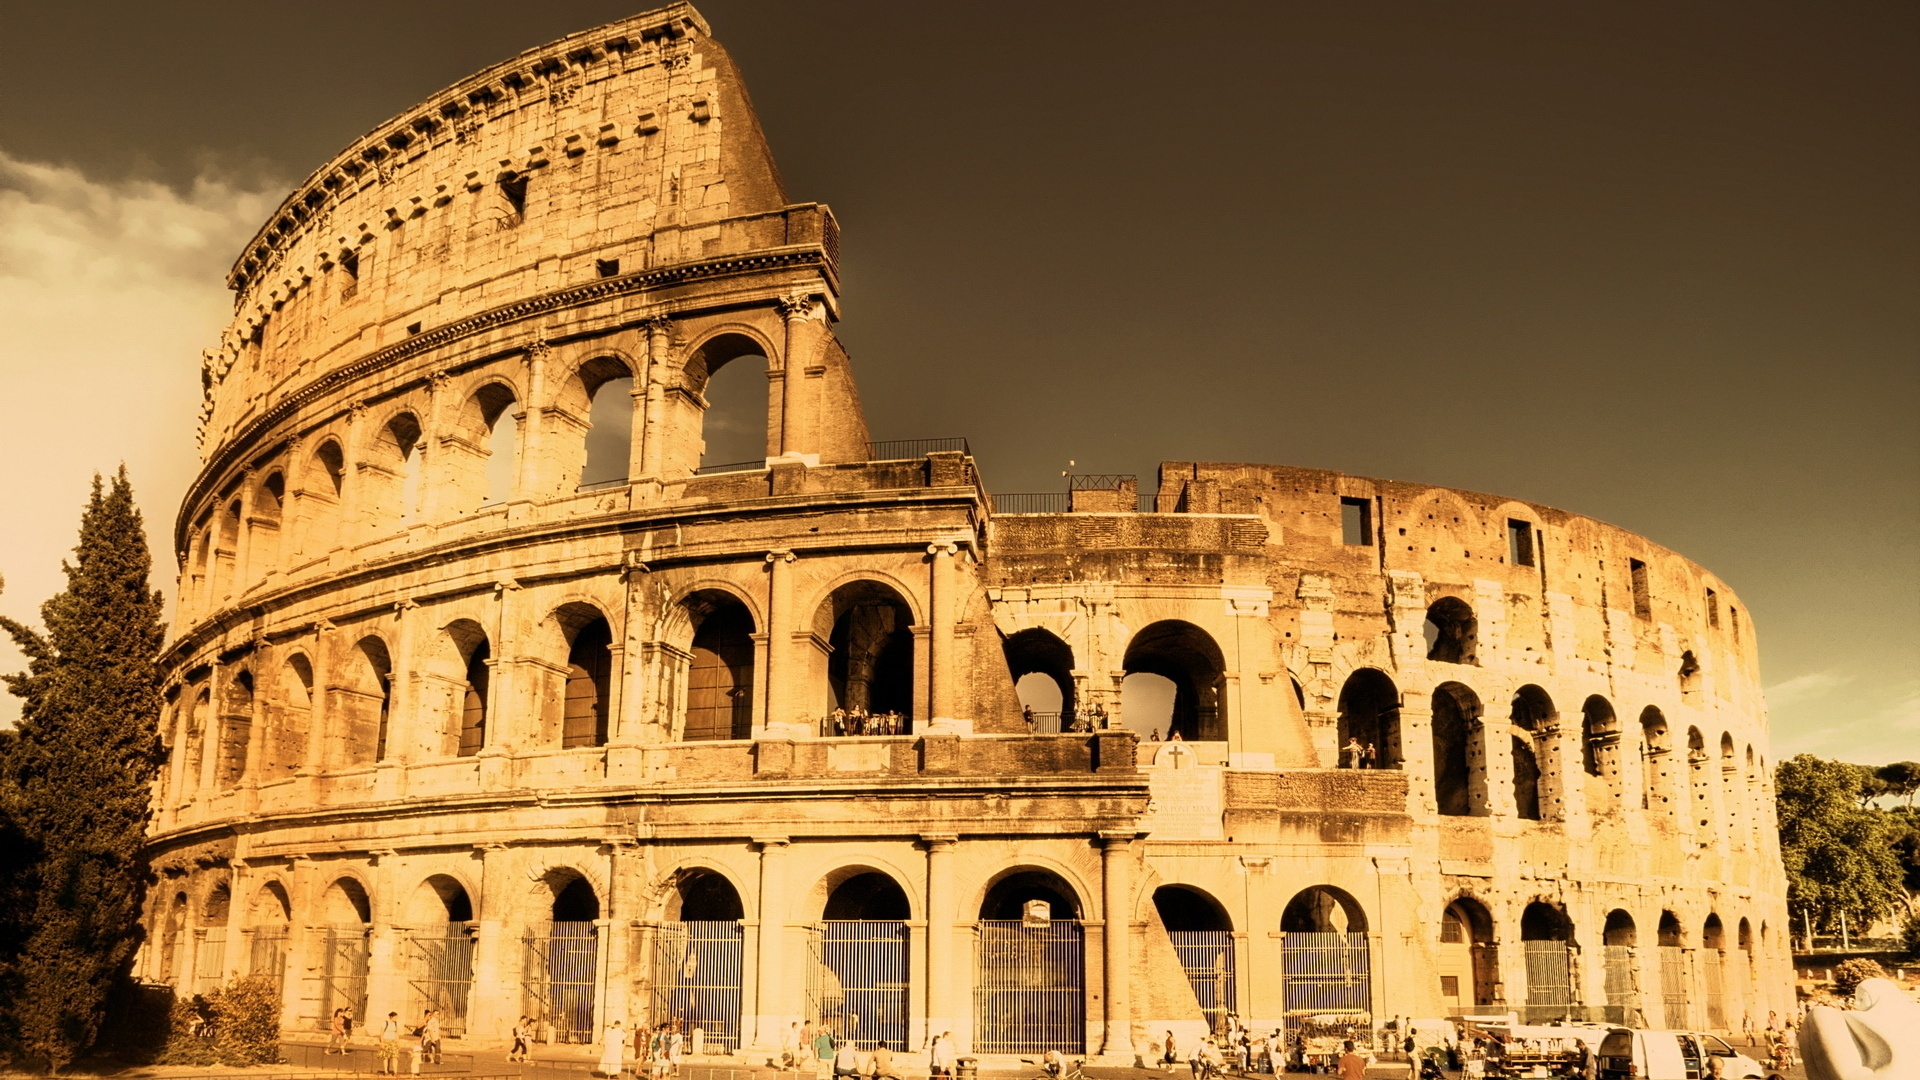 coliseum-ancient-rome-wallpaper